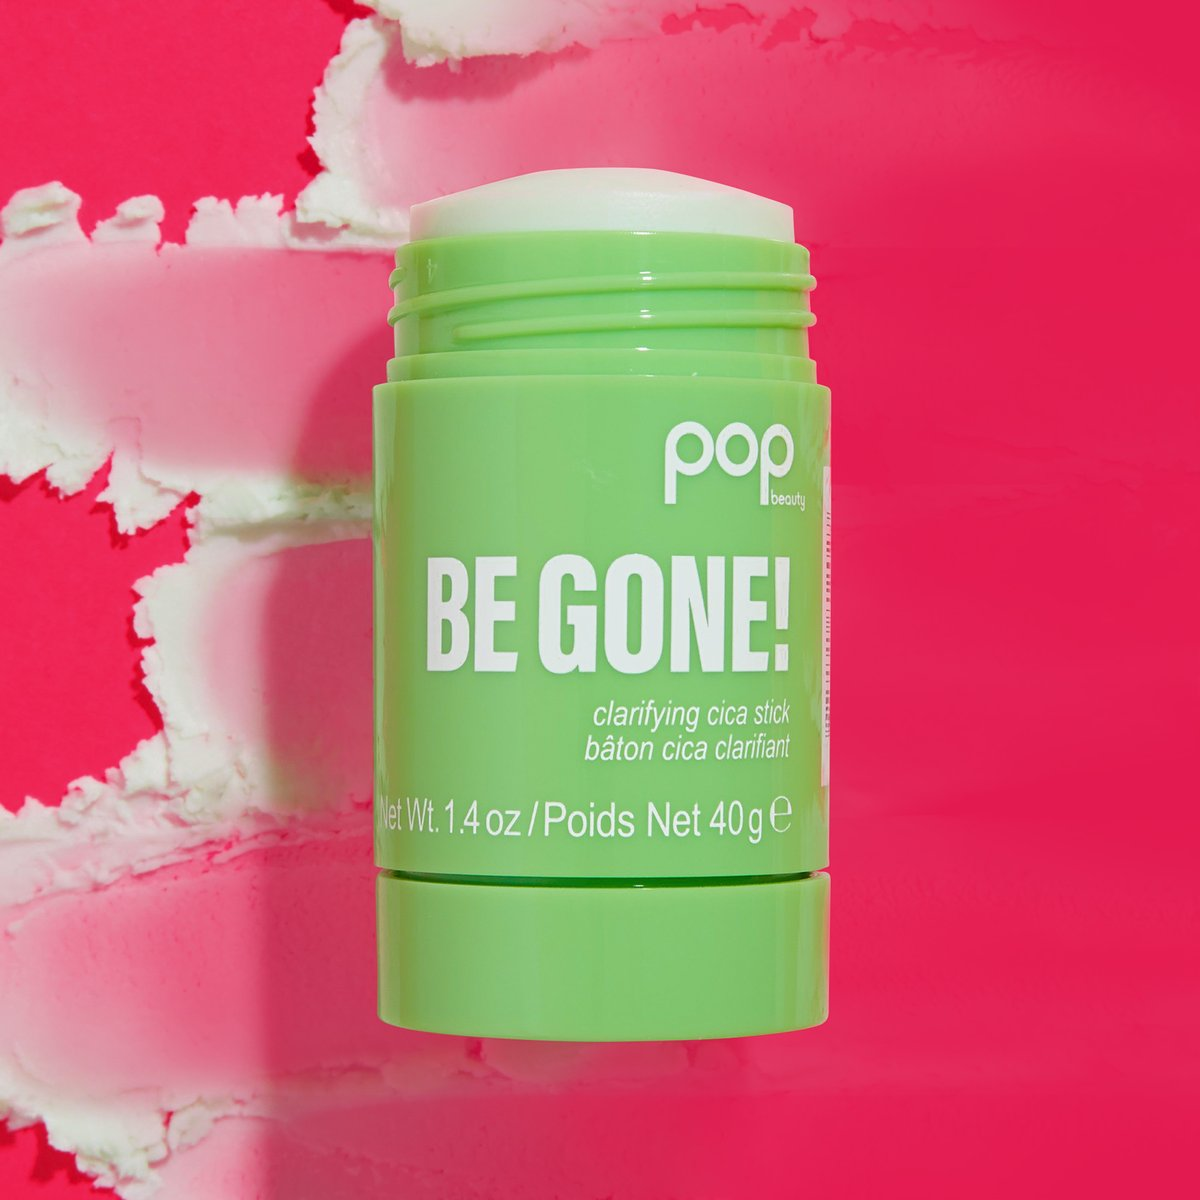 Bye bye blemishes! 😍 Enjoy the purifying and calming benefits of aloe, cica & cucumber with the new on-the-go must that is Be Gone! 💜 Ready to #MakeItPOP? #POPbeauty #Skincare https://t.co/ZJCMIxScFl